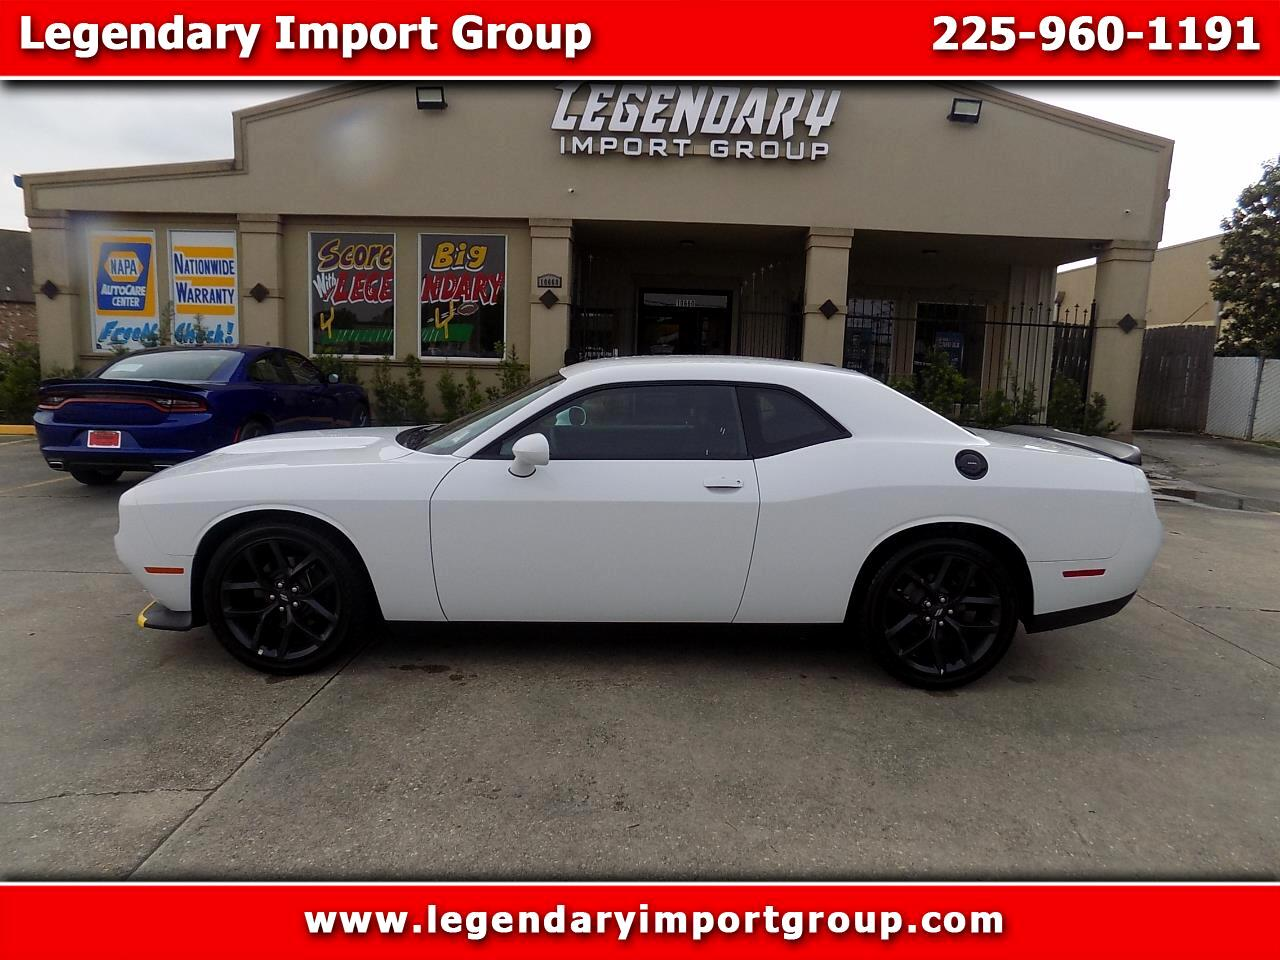 Used 2020 Dodge Challenger Gt Rwd For Sale In Baton Rouge La 70816 Legendary Import Group